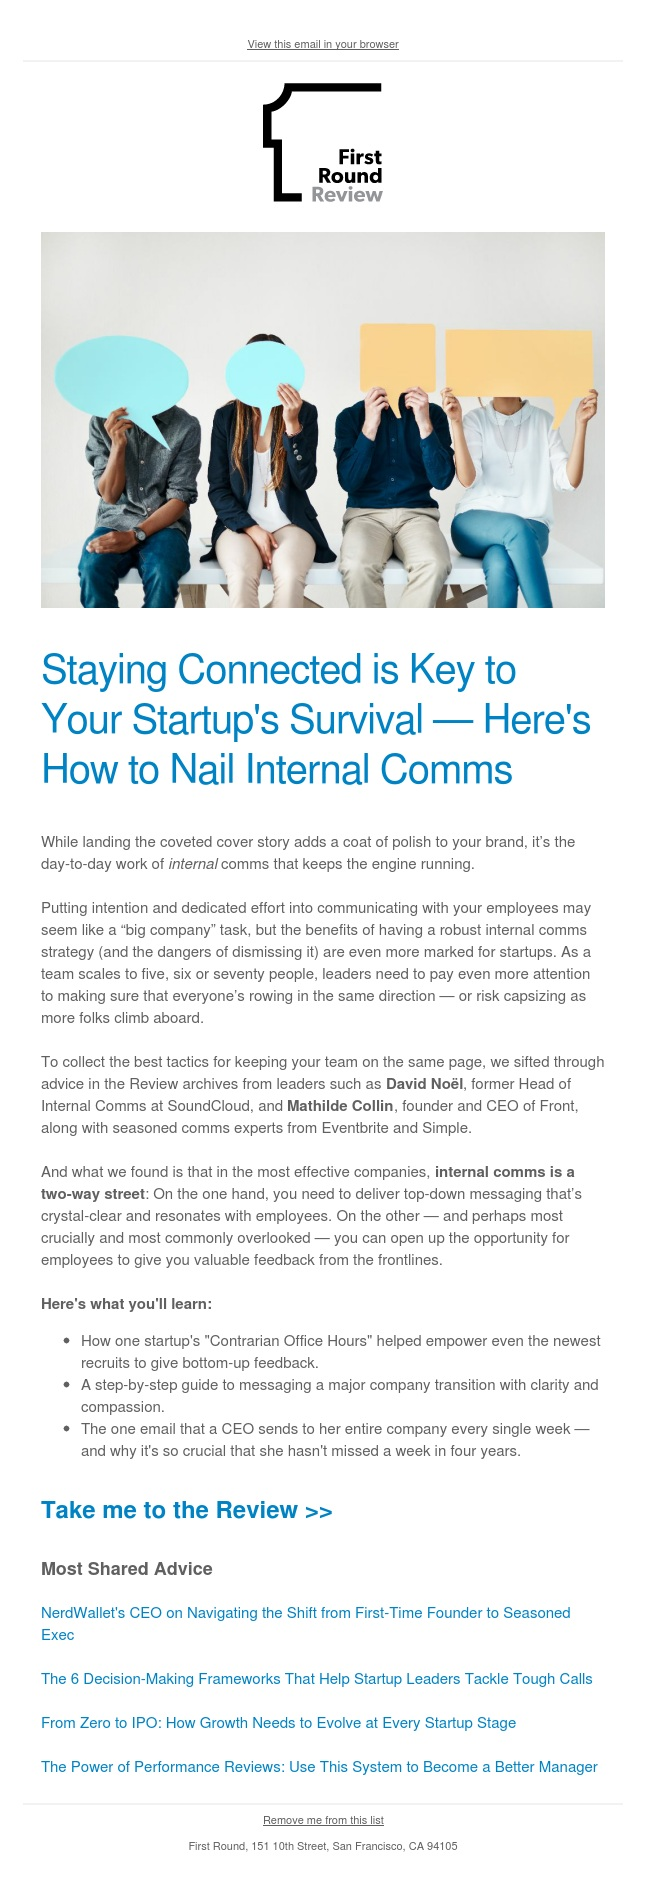 All Hands isn't enough—step up your internal comms game with these tactics